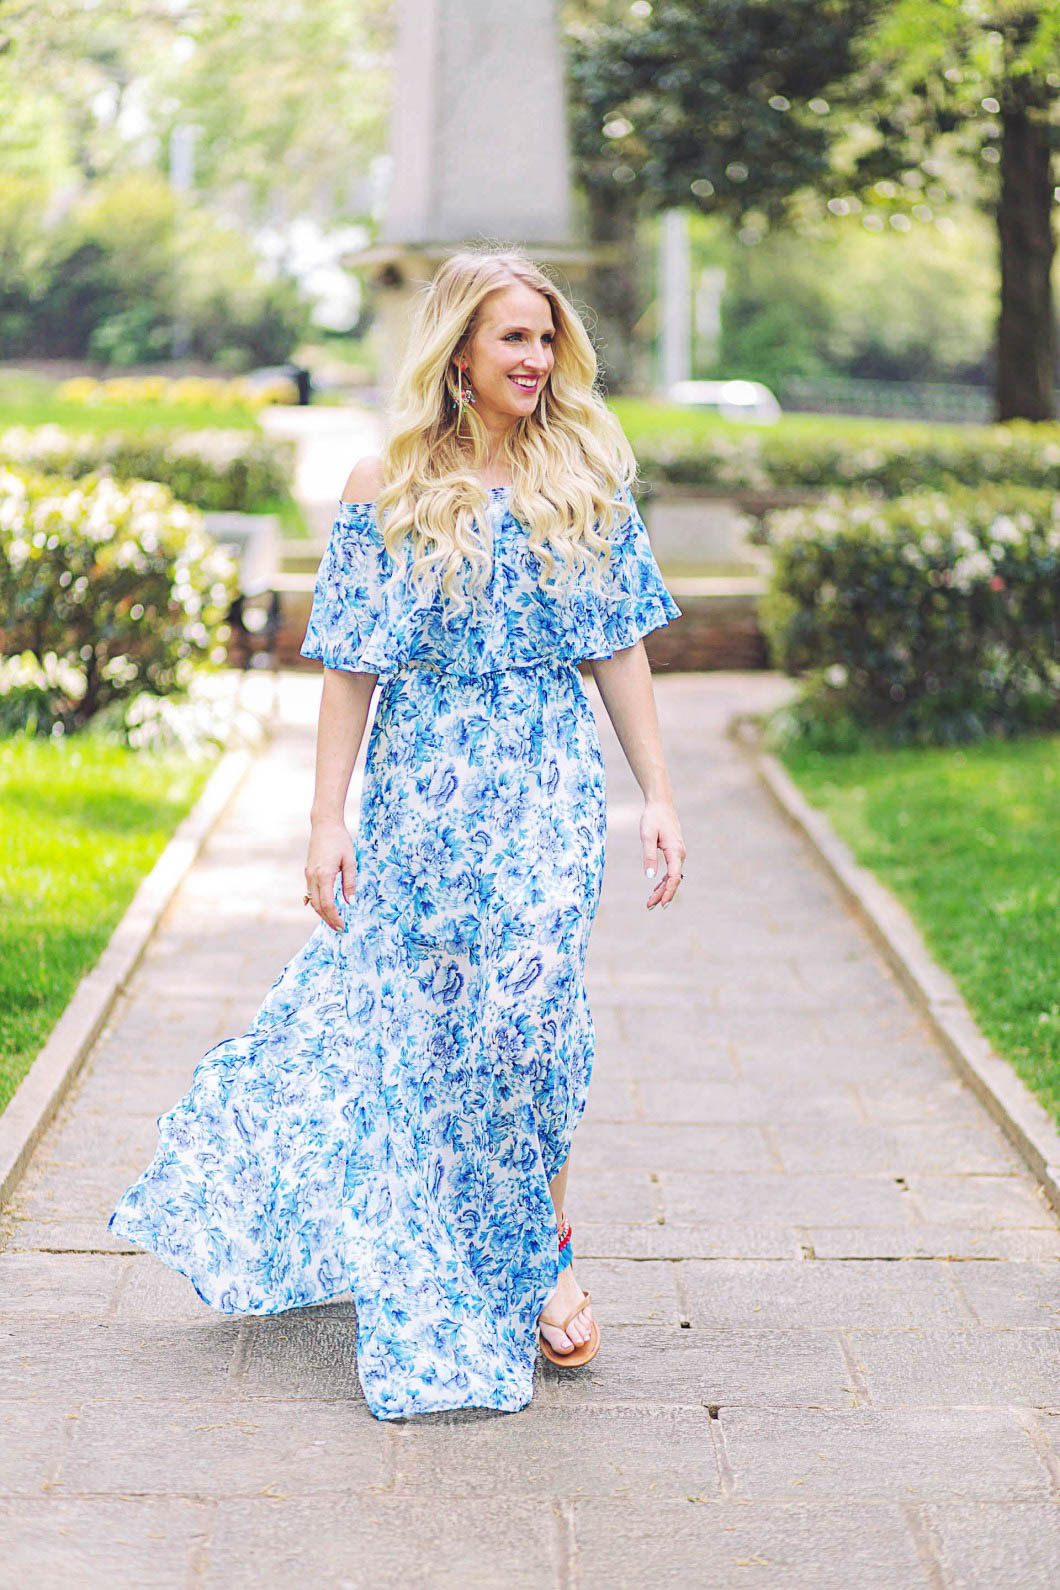 zappos and show me your mumu dress